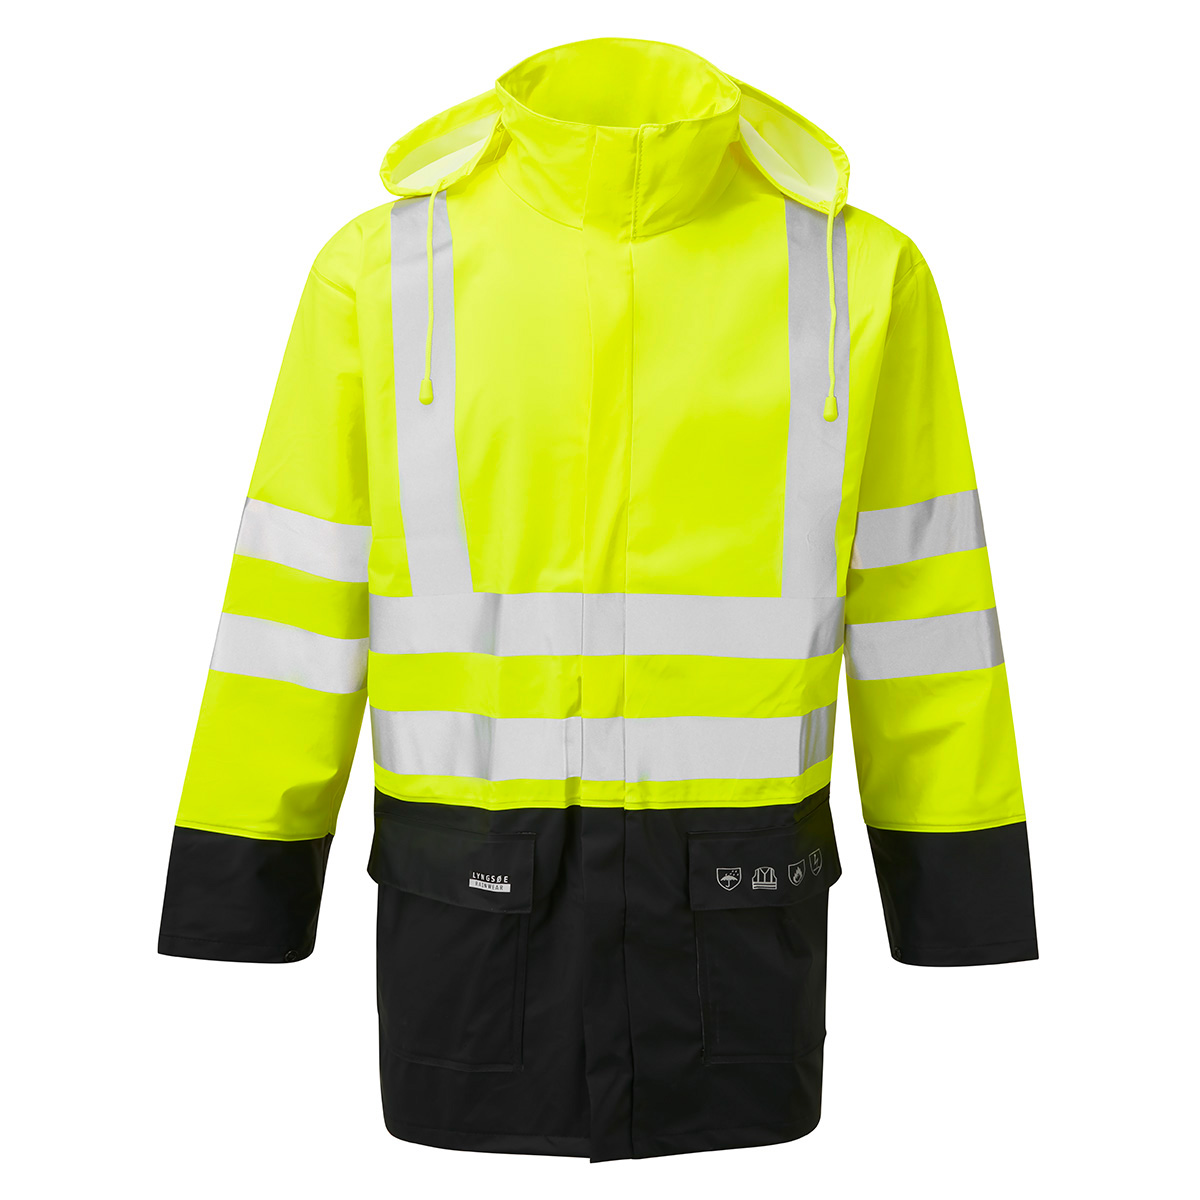 AS3055_Microflex_Anti-Static_Flame_Retardant_Two-Tone_Hi-Vis_Rain_Jacket_YEL_NVY copy